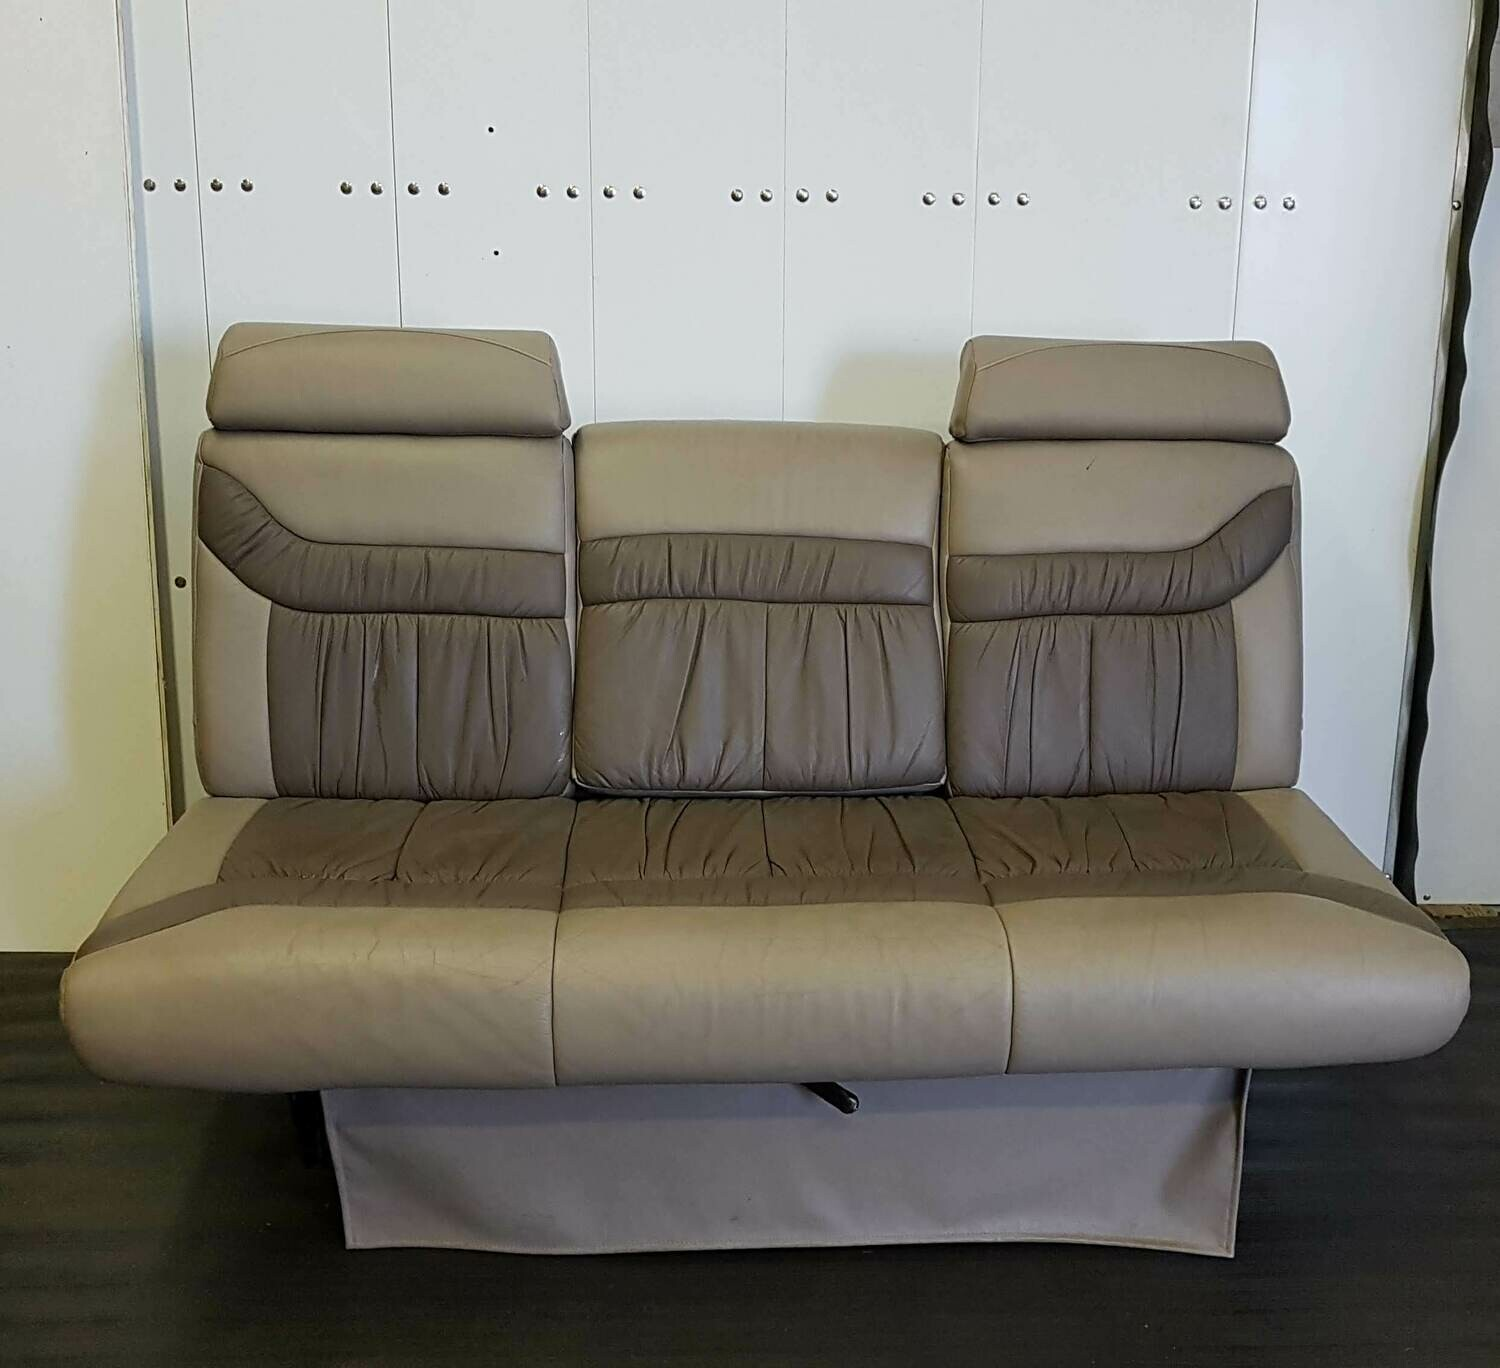 Manual Sofa Bed for RV Conversions